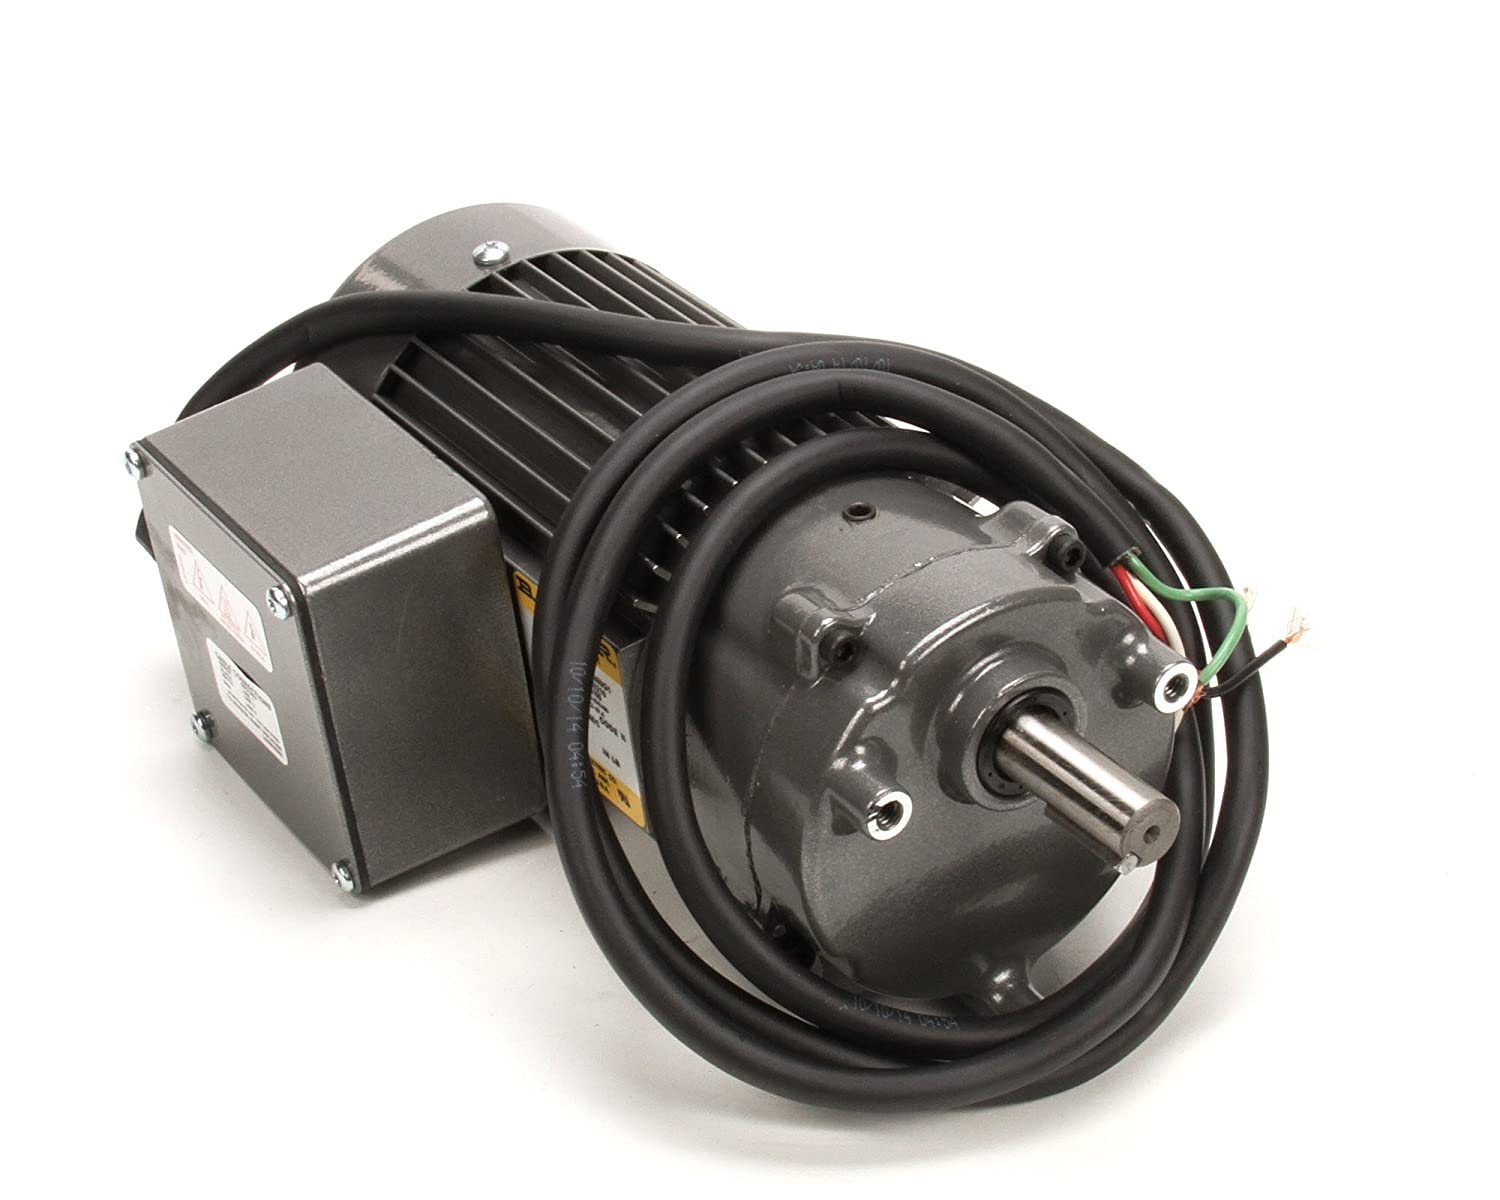 "Champion - Moyer Diebel 113732 Gear Motor, 1/6 hp, Multi-Volt, 17"" Height, 11"" Width, 8"" Length 718AcNs0n5L._SL1500_"